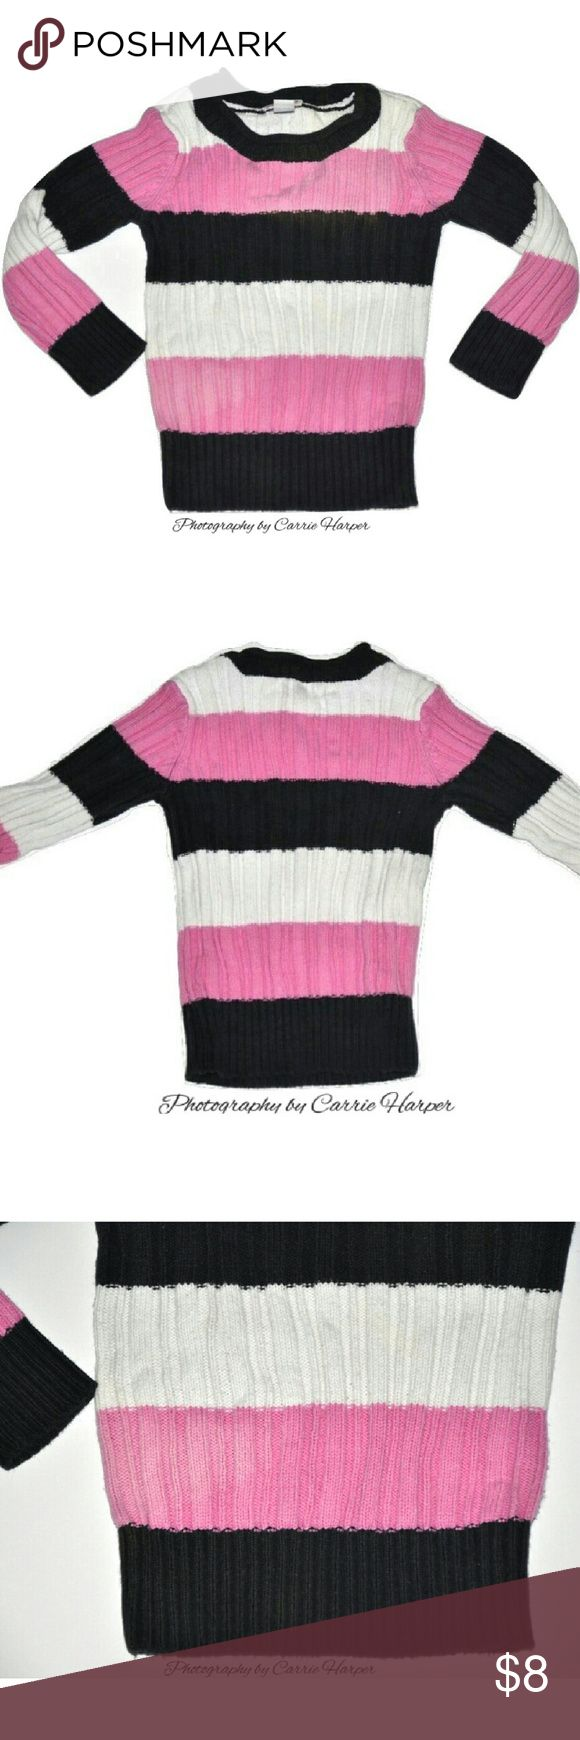 Toddler Girls Sweater Size 3T By Place 89  63% Cotton  37% Acrylic  Slight Wash wear  Good Used condition  When I receive my items they are immediately washed (if applicable) in Tide Free and Clear, Downy with no scent/unscented dryer sheets as well. I know a lot of people are sensitive to fragrance (myself included). Smoke free, dog friendly home Price is firm Shirts & Tops Sweaters